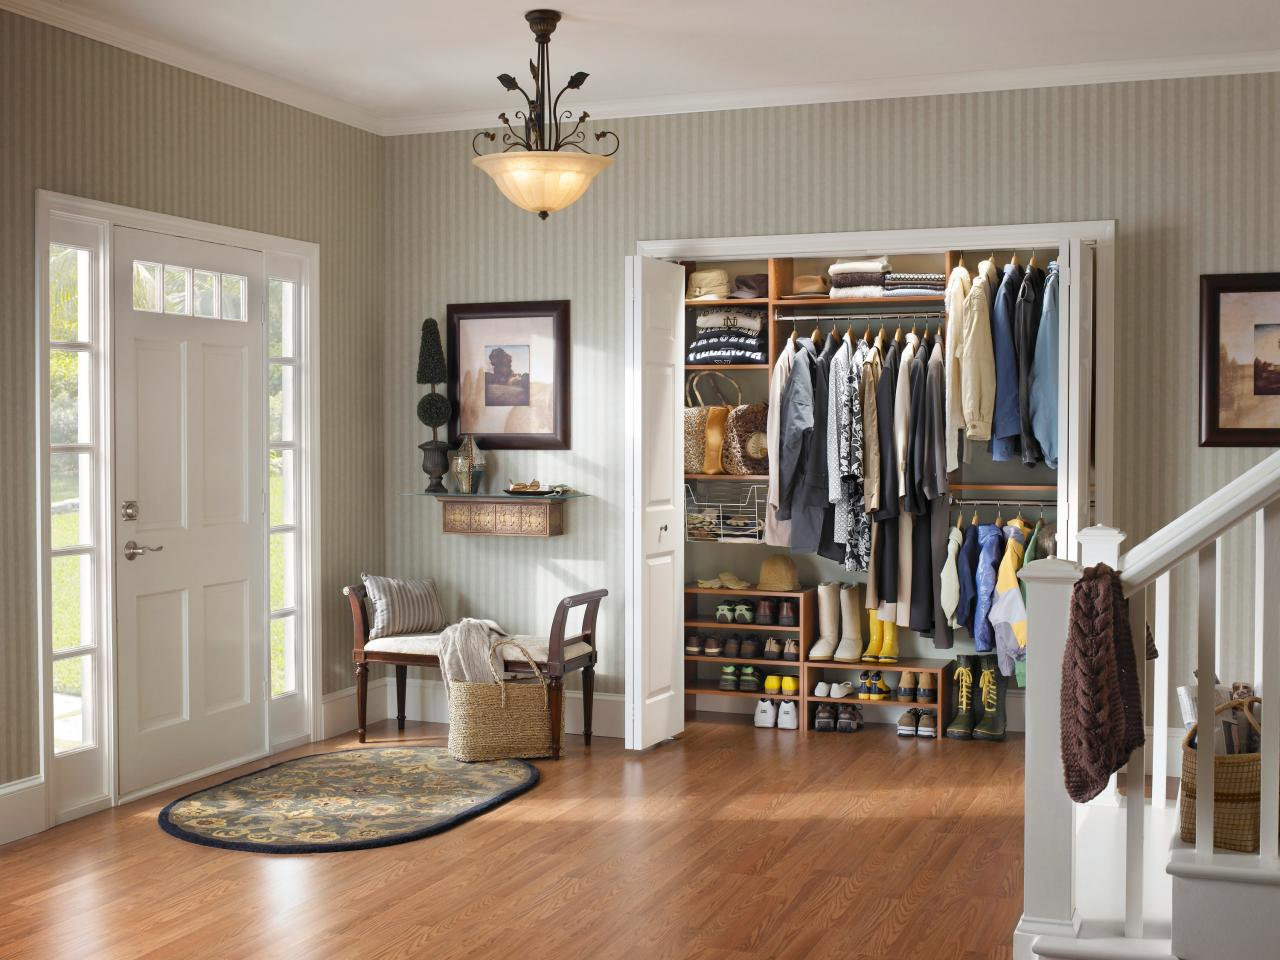 Use Oak Shoes Shelves And Floating Wall Shelves In Small Closet Organizer  Ideas Near Entry Area